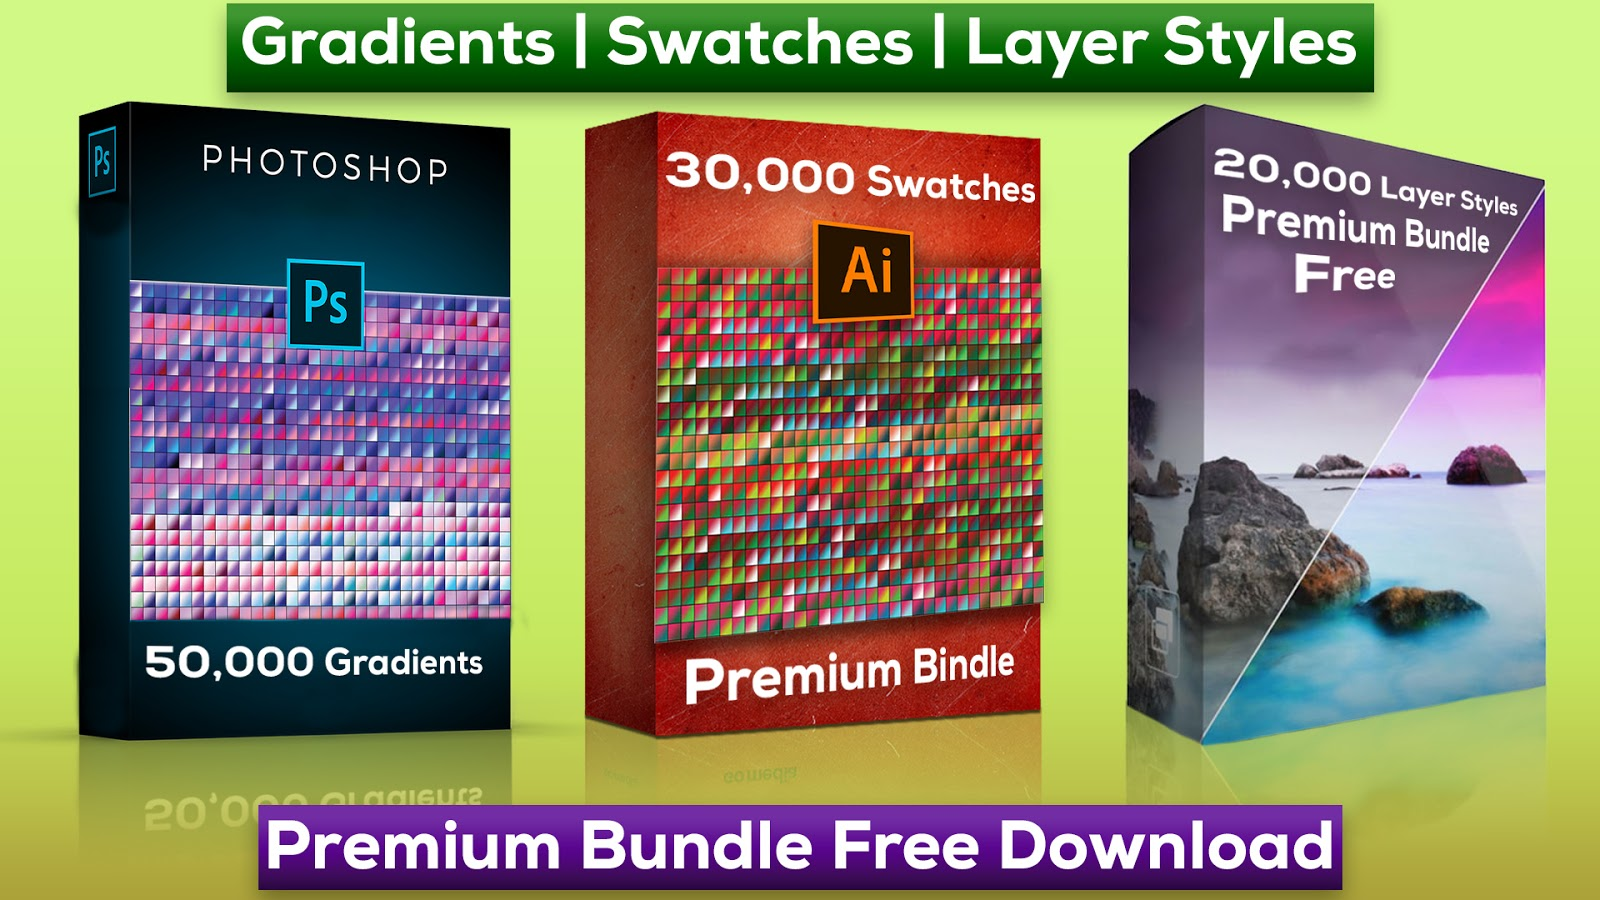 Photoshop & illustrator Premium Bundle Free Download, Gradients, Swatches, Layer Styles